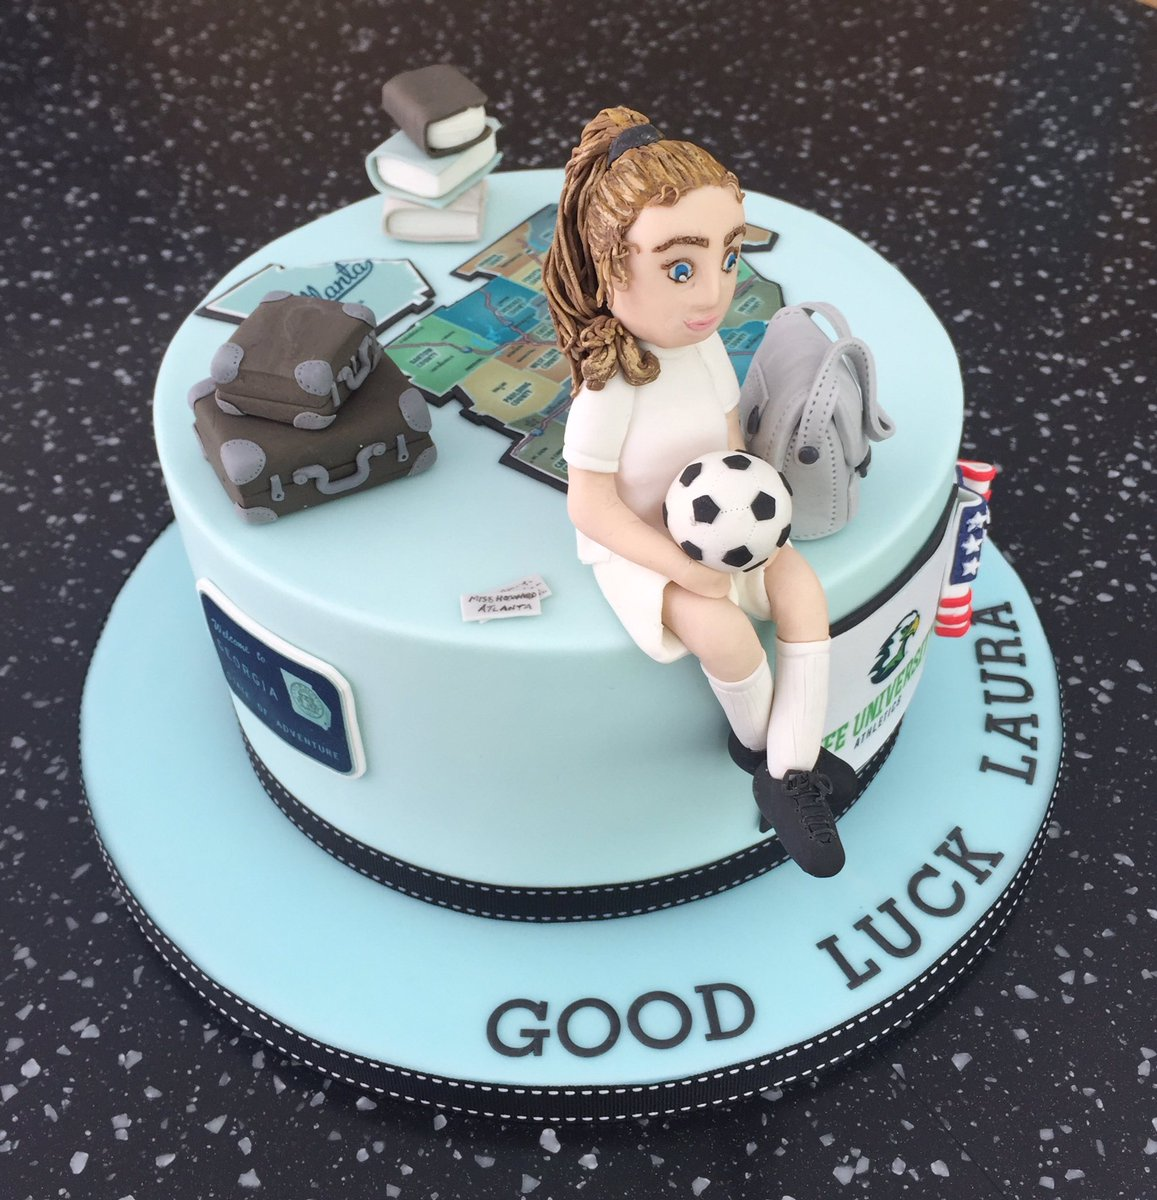 Cake Mad on Twitter A Good Luck cake for a lucky young lady off to